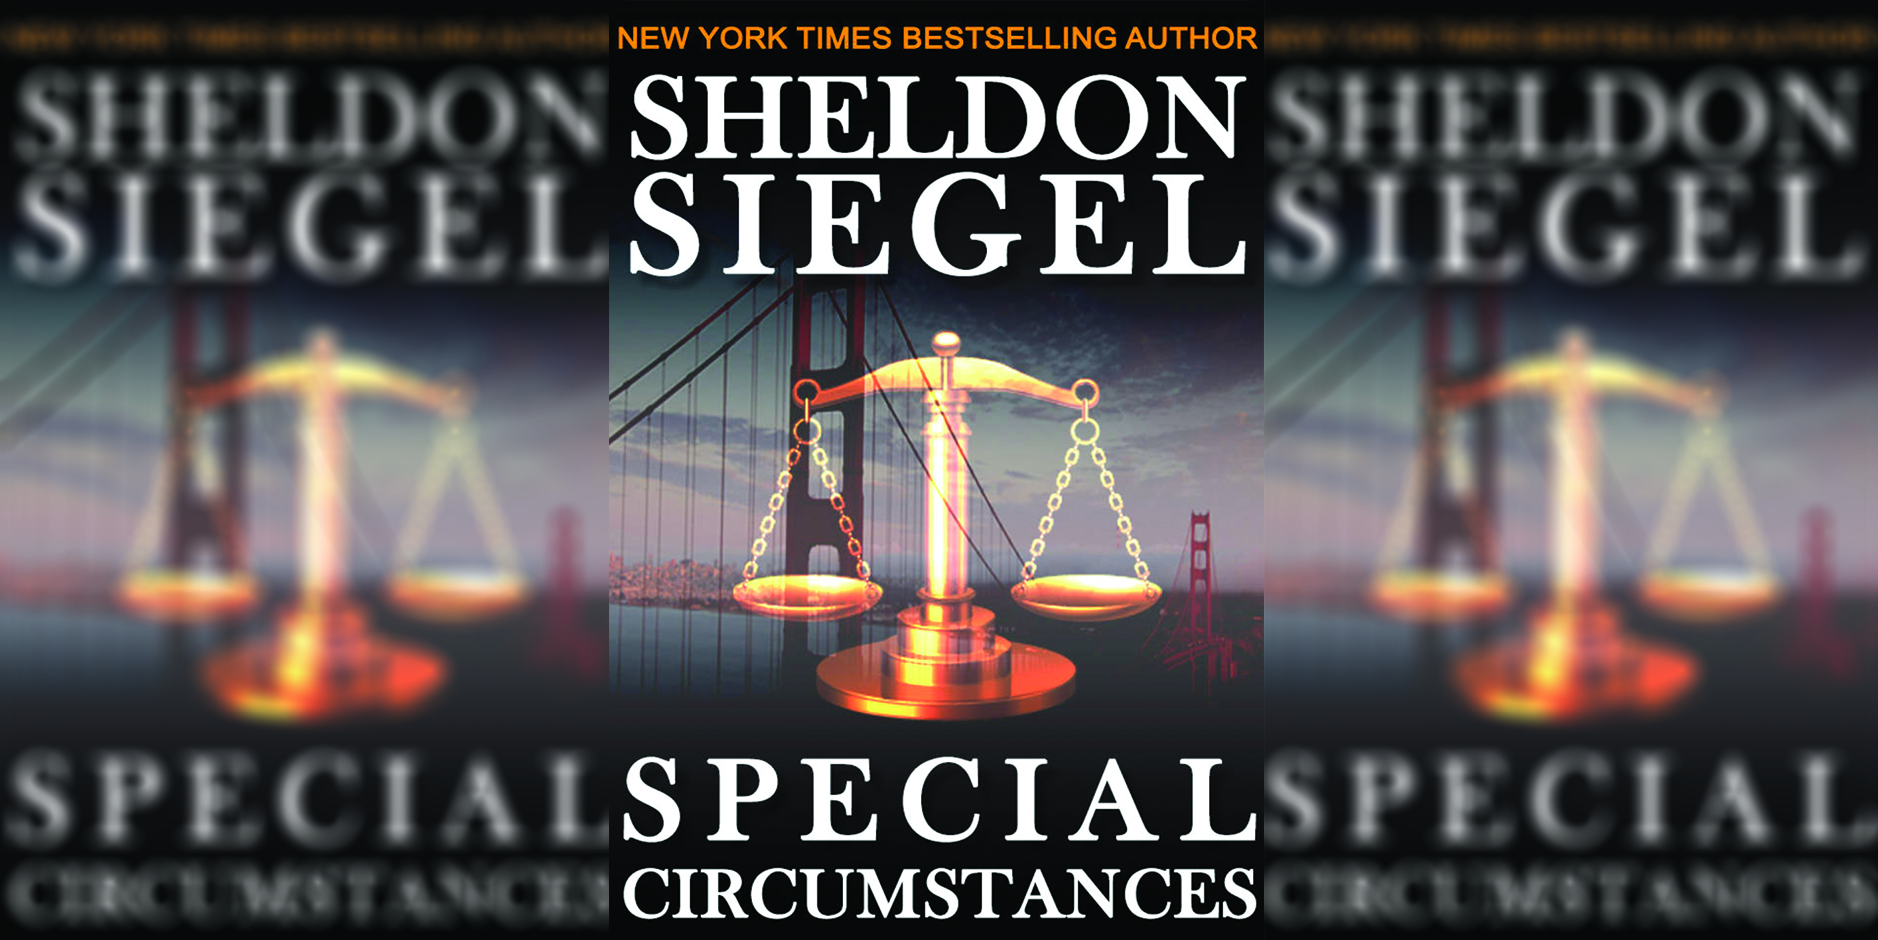 'Special Circumstances' by New York Times best-selling author Sheldon Siegel is now a FREE eBook